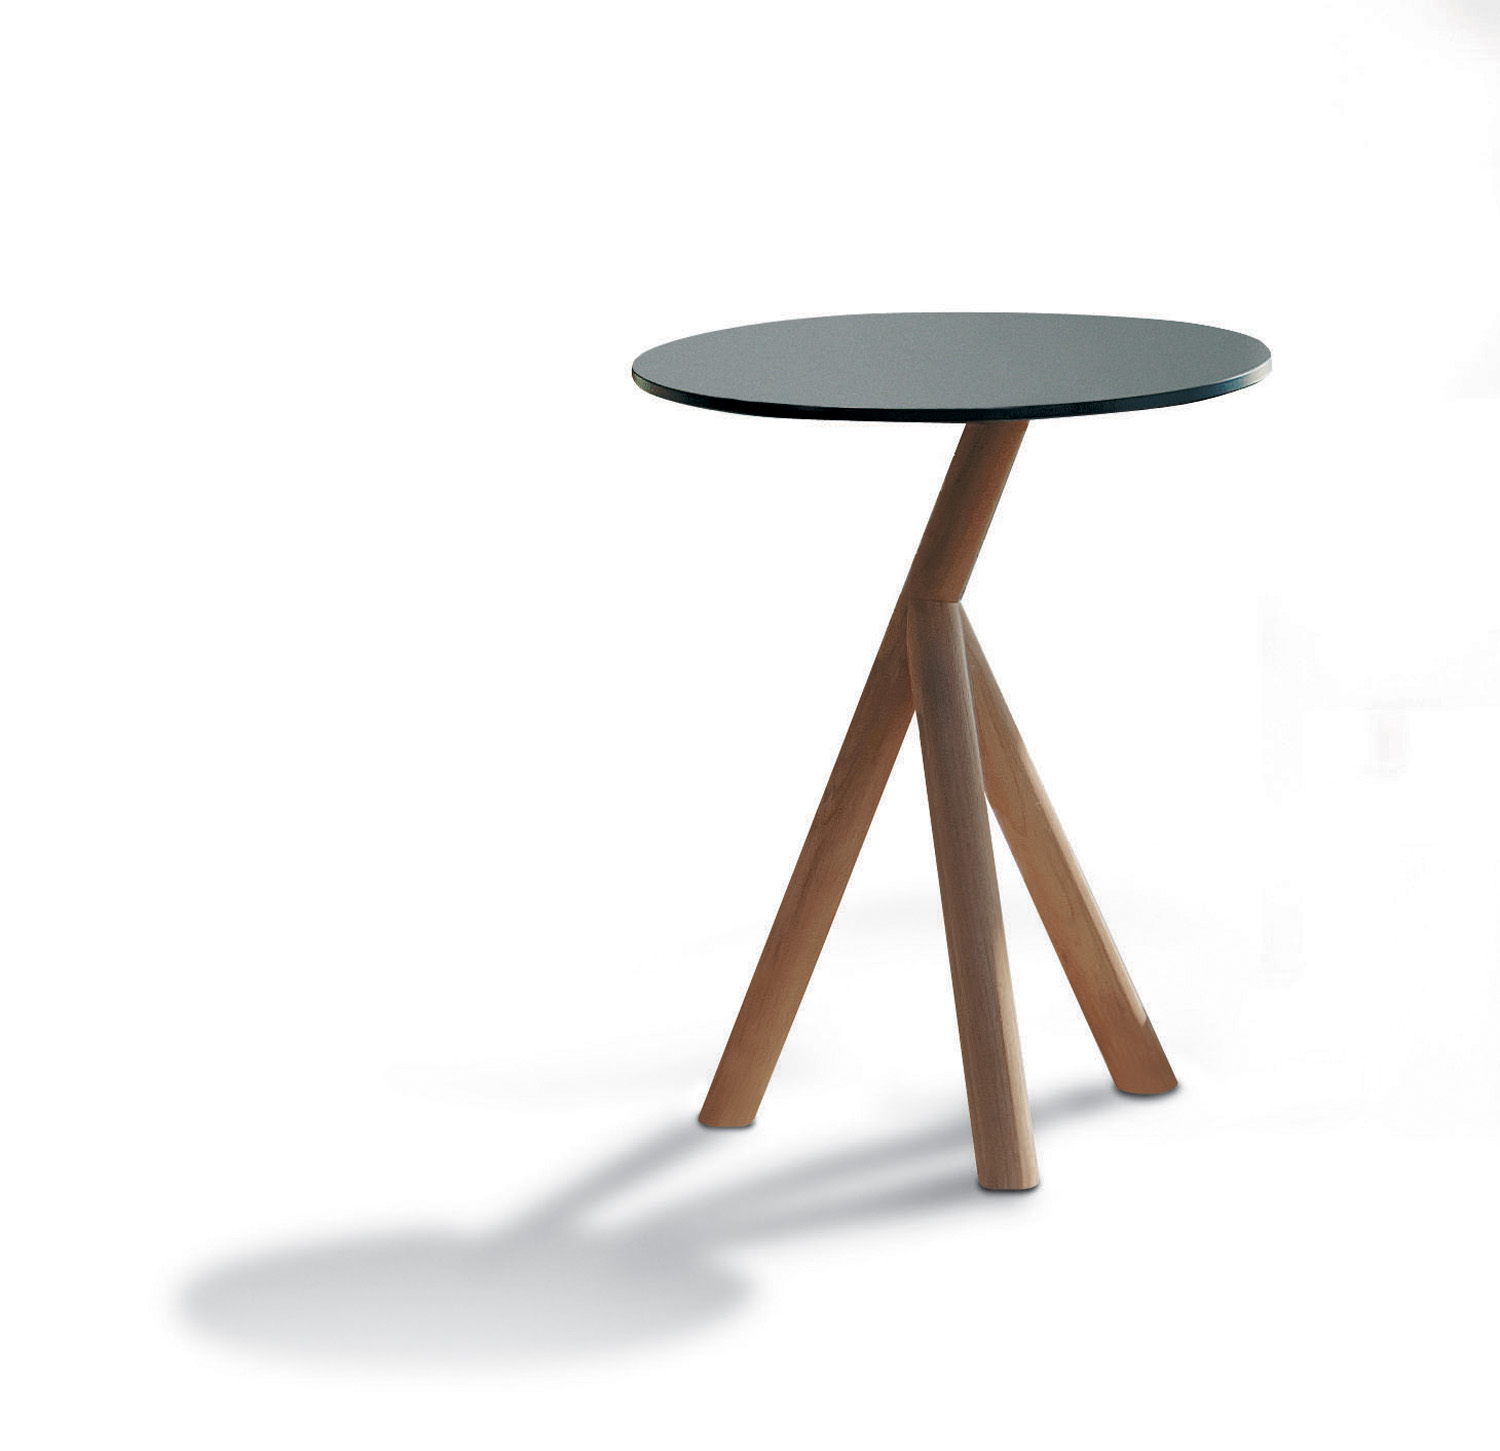 Roda's teak Stork side table, for inside or out, from Contempo www.contempocollection.com.au